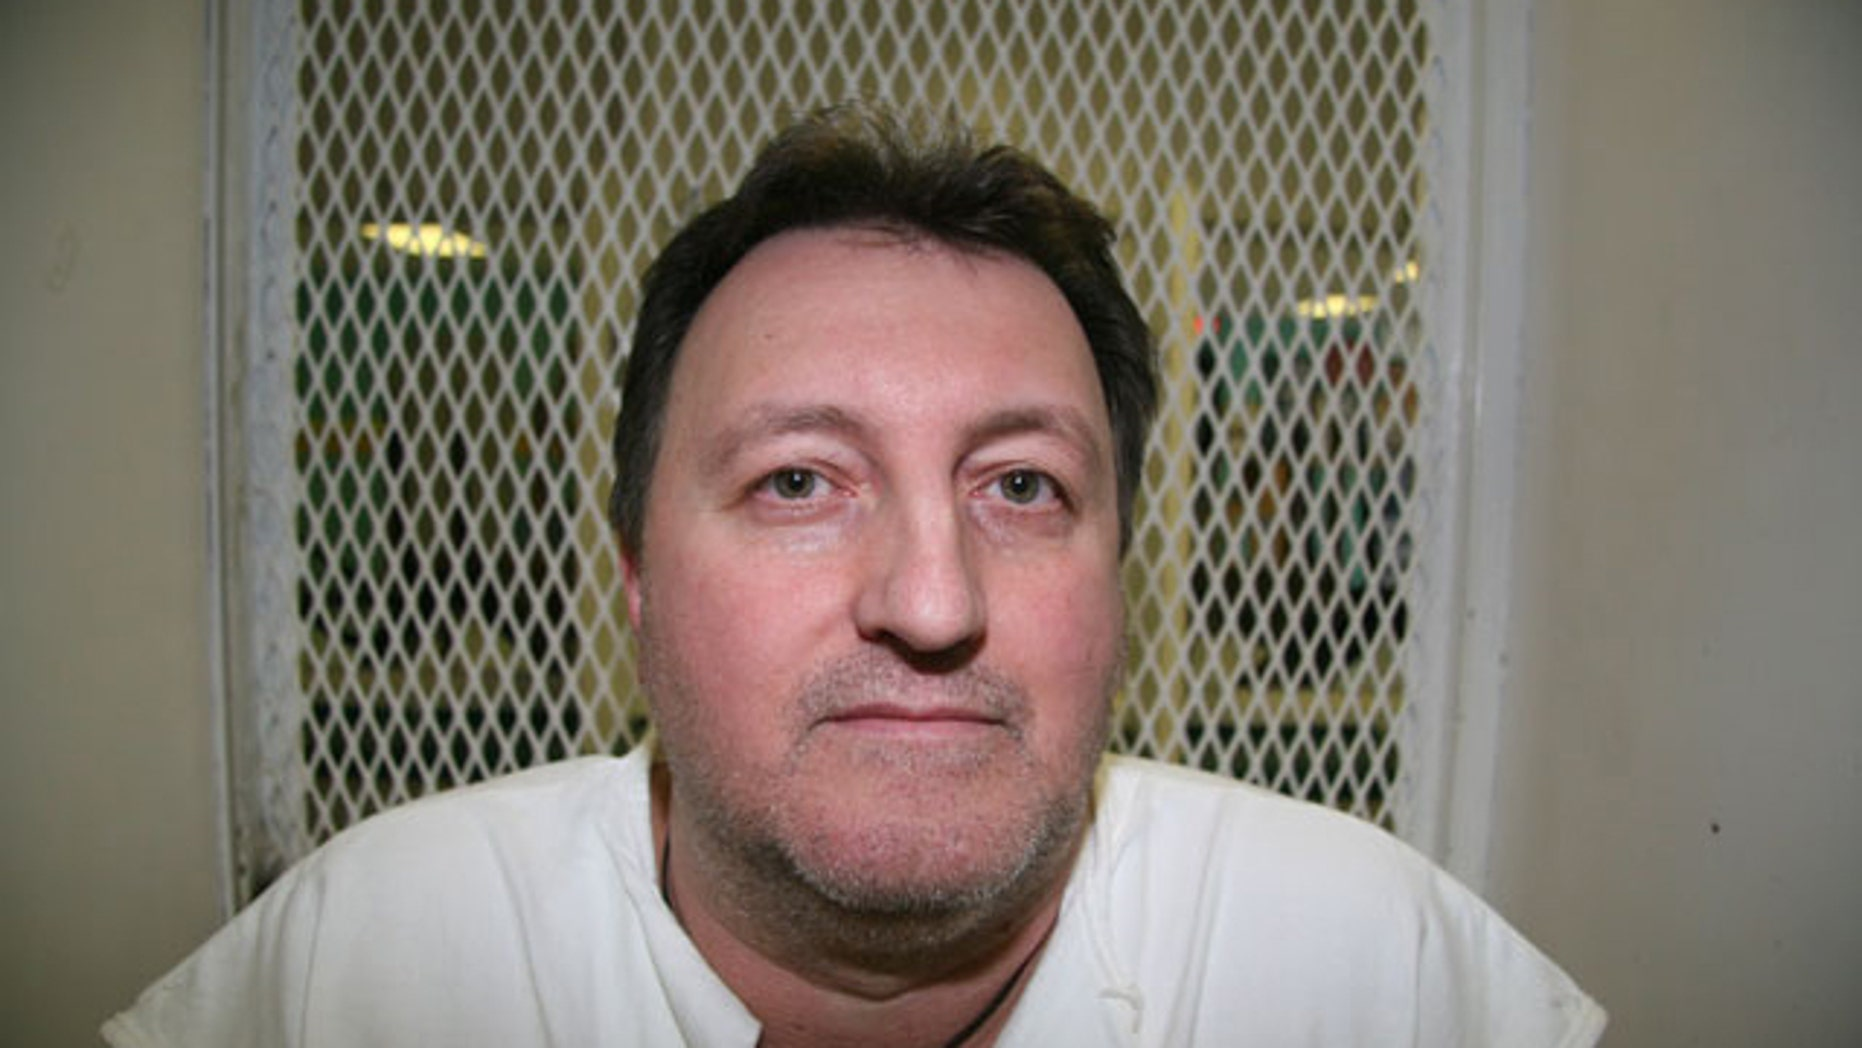 April 6, 2011: Condemned inmate Cary Kerr speaks from a visiting cage at Texas death row at the Polunsky Unit of the Texas Department of Criminal Justice in Livingston, Texas. (AP)